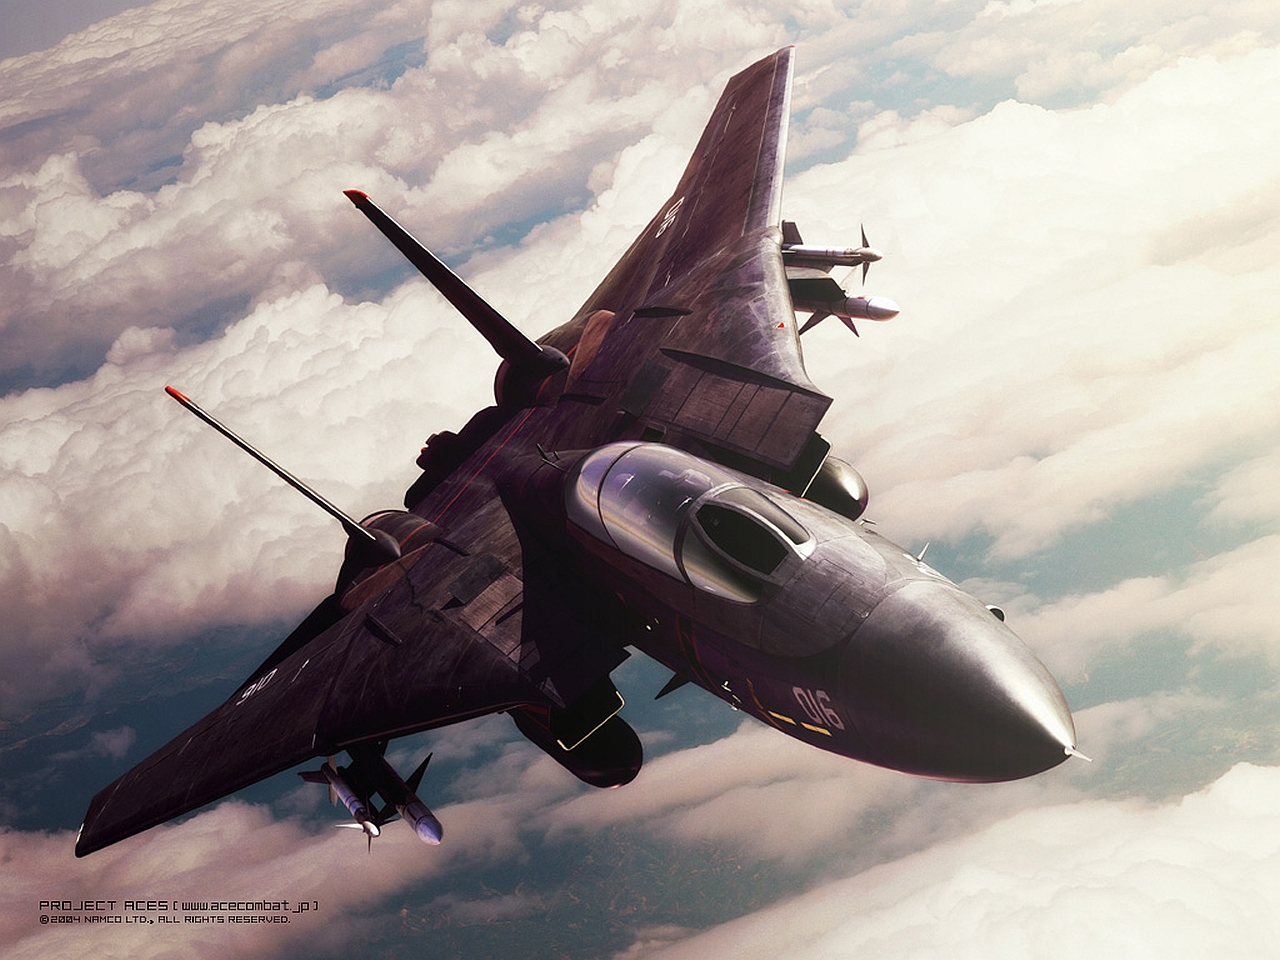 Ace combat clipart. Clipartfox images about highnthesky